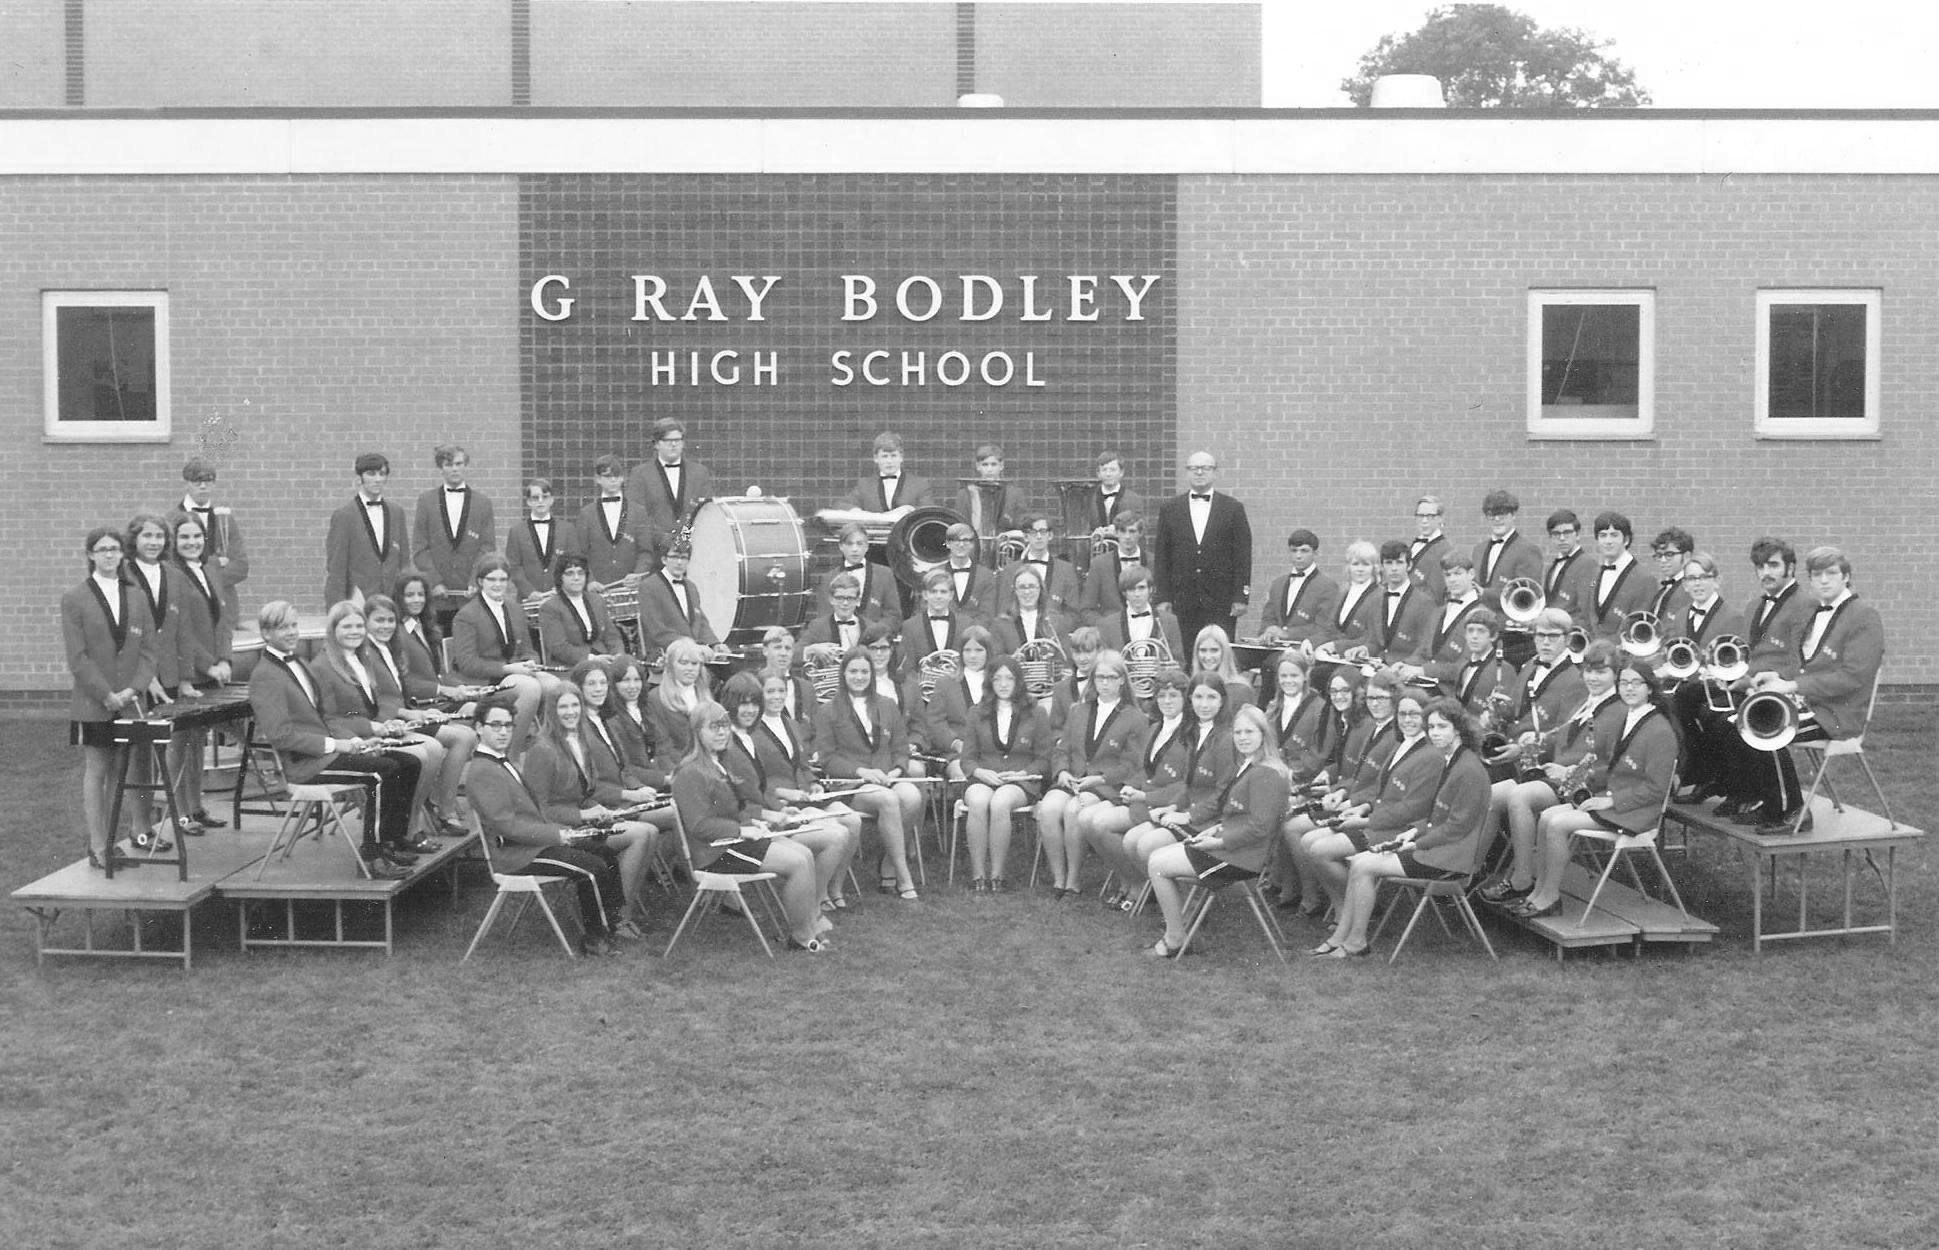 Richard Swierczek, shown here with members of the 1972 G. Ray Bodley High School Band, has been following the success of his students for many years.